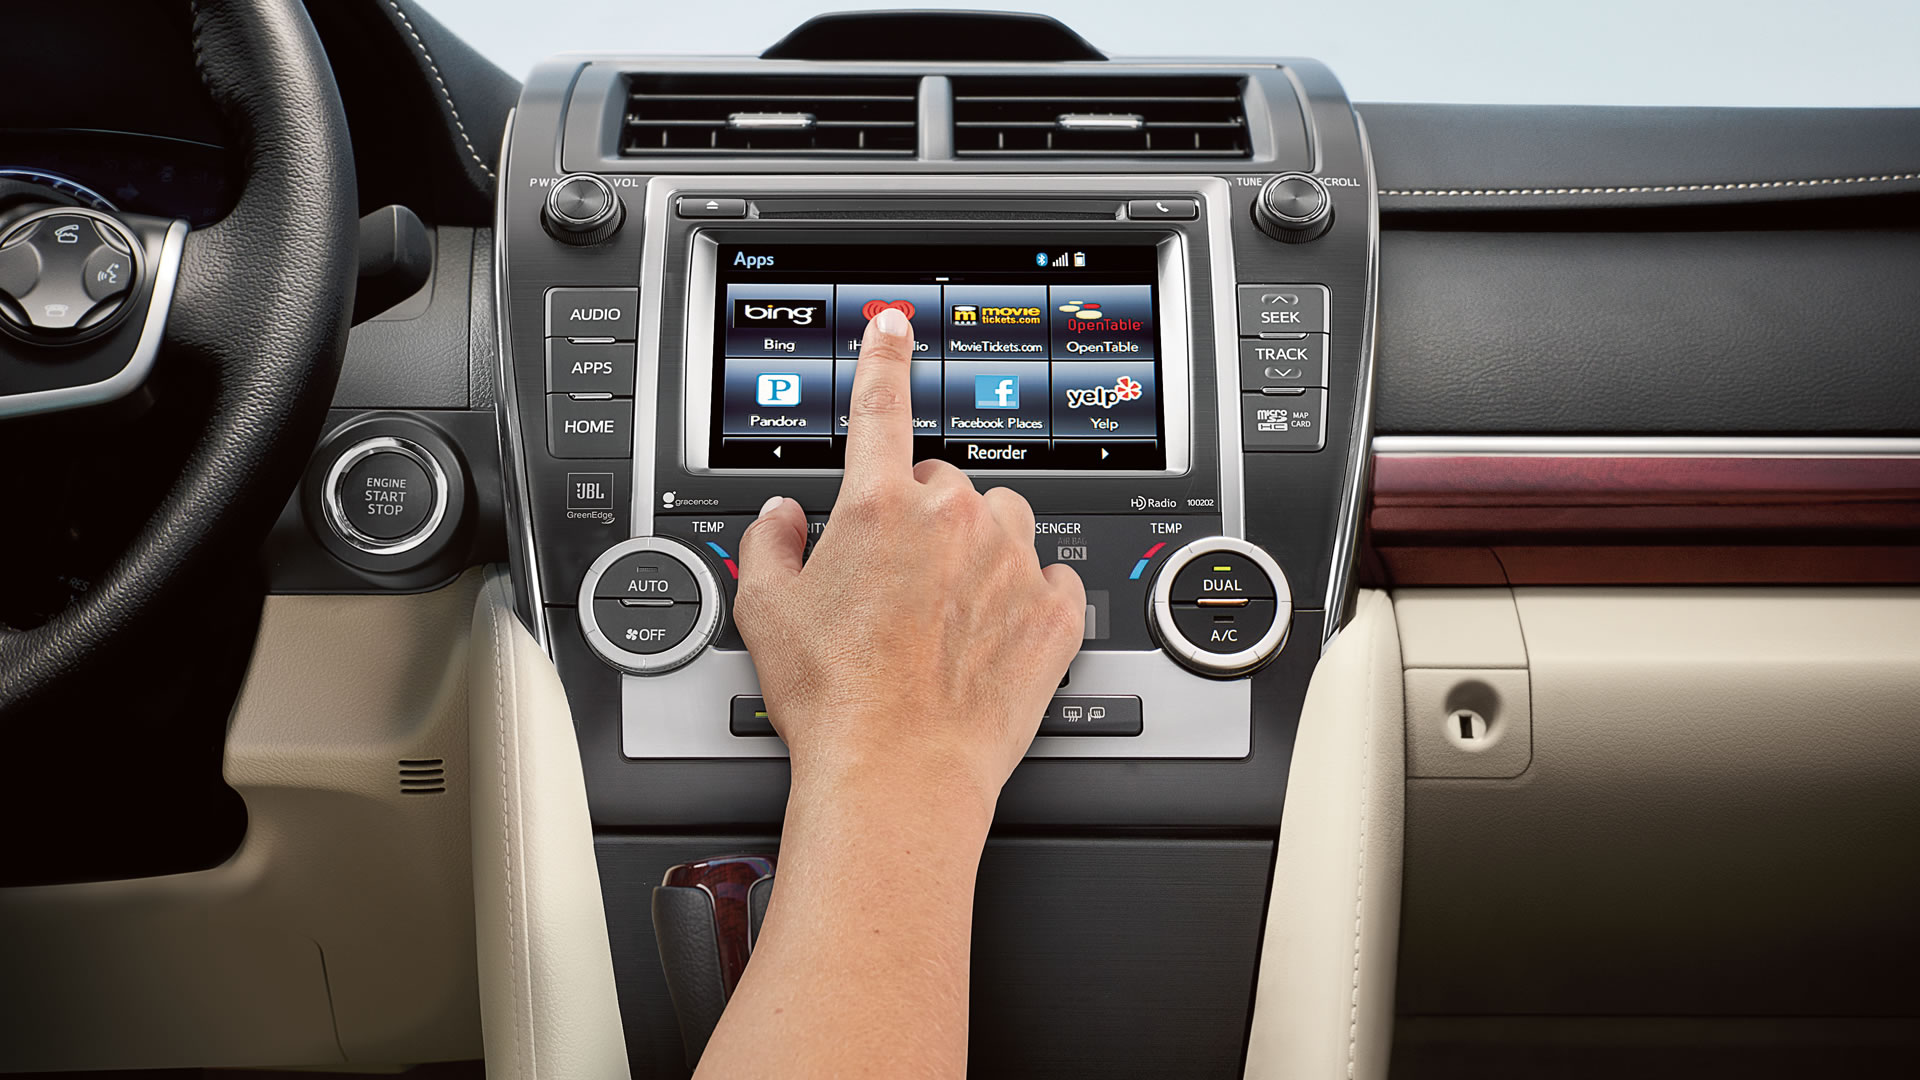 What's the Standard Audio System like in a 2014 Toyota Camry